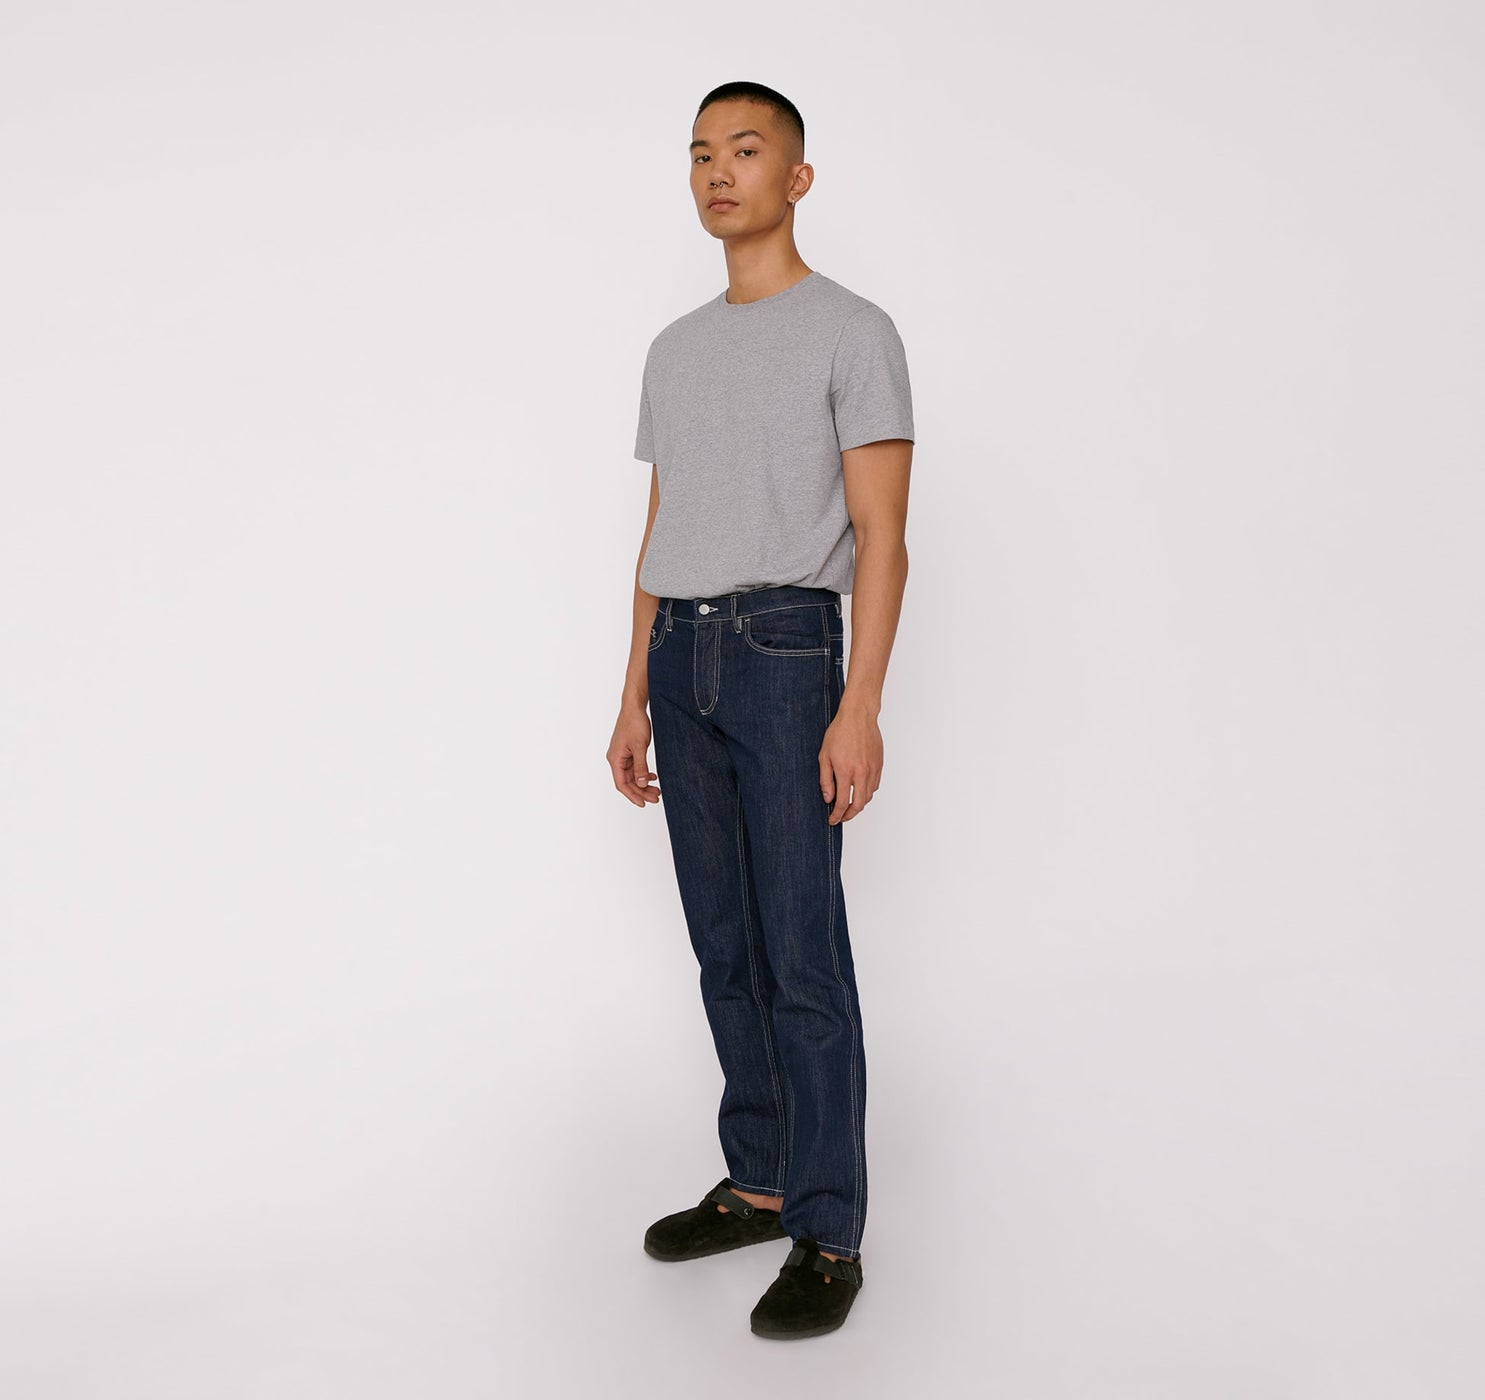 Circular Denim 5 Pocket